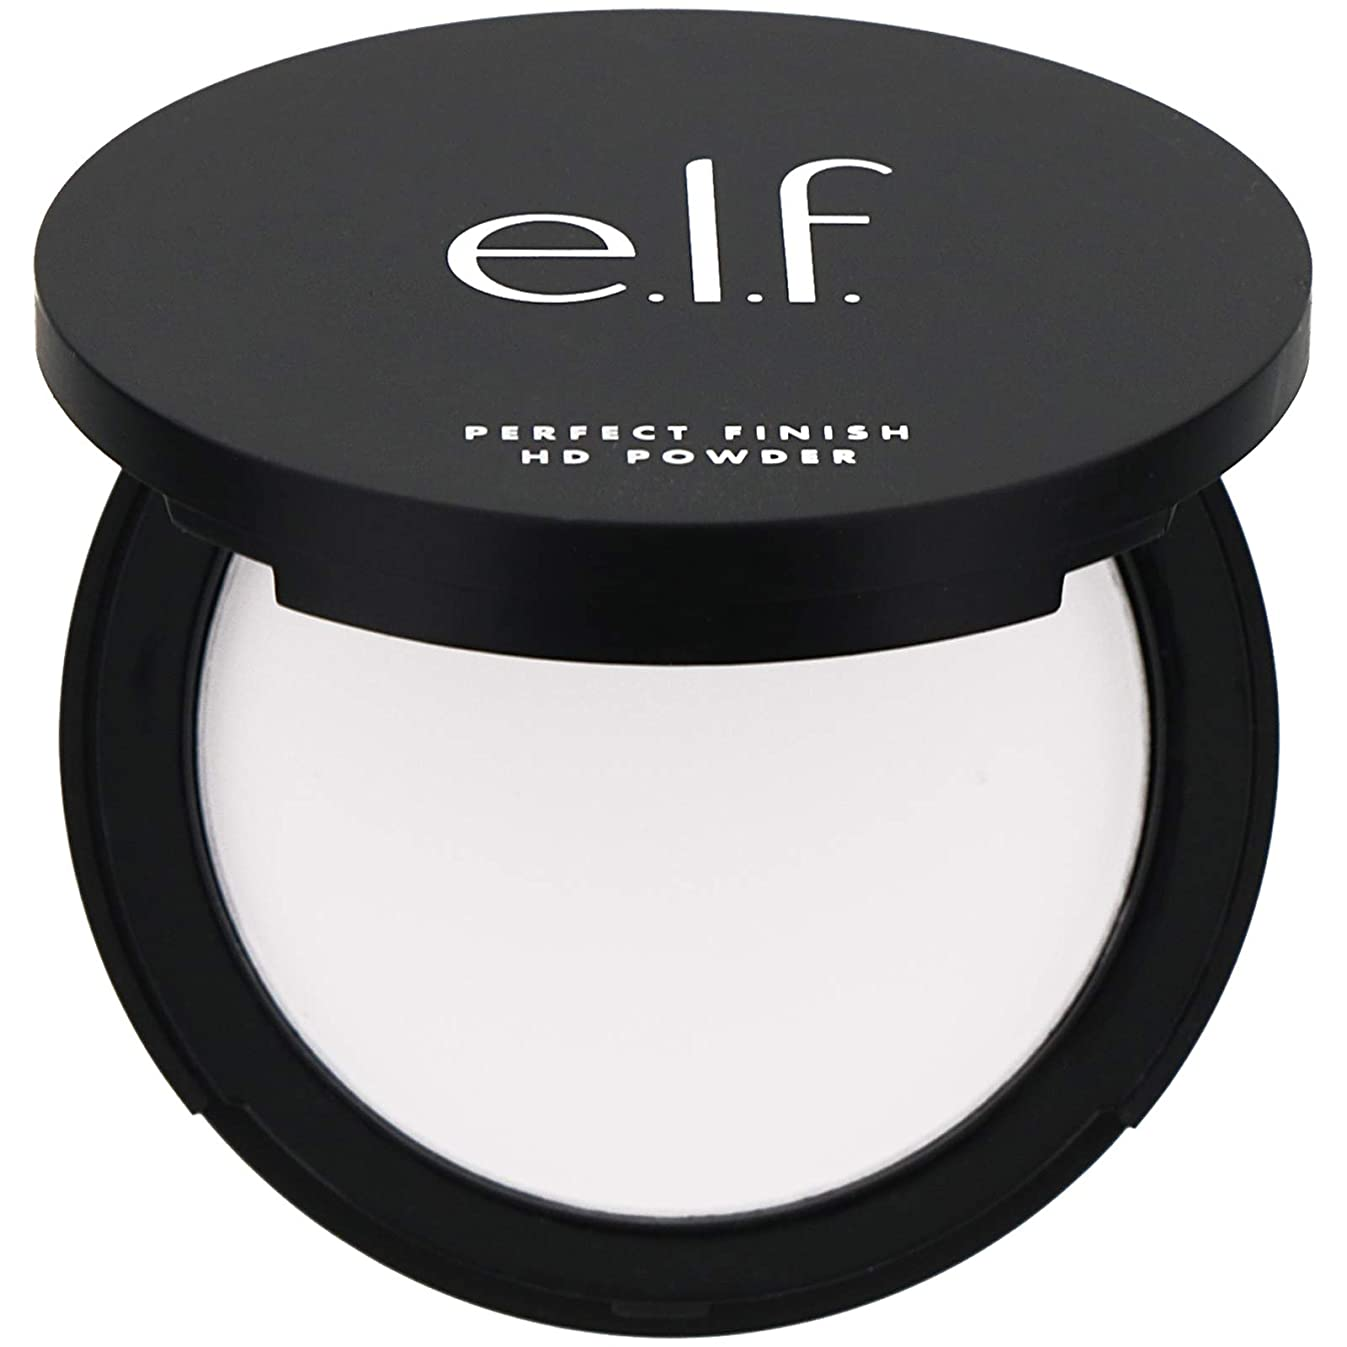 反射自伝陽気なe.l.f. Studio Perfect Finish HD Powder Translucent (並行輸入品)